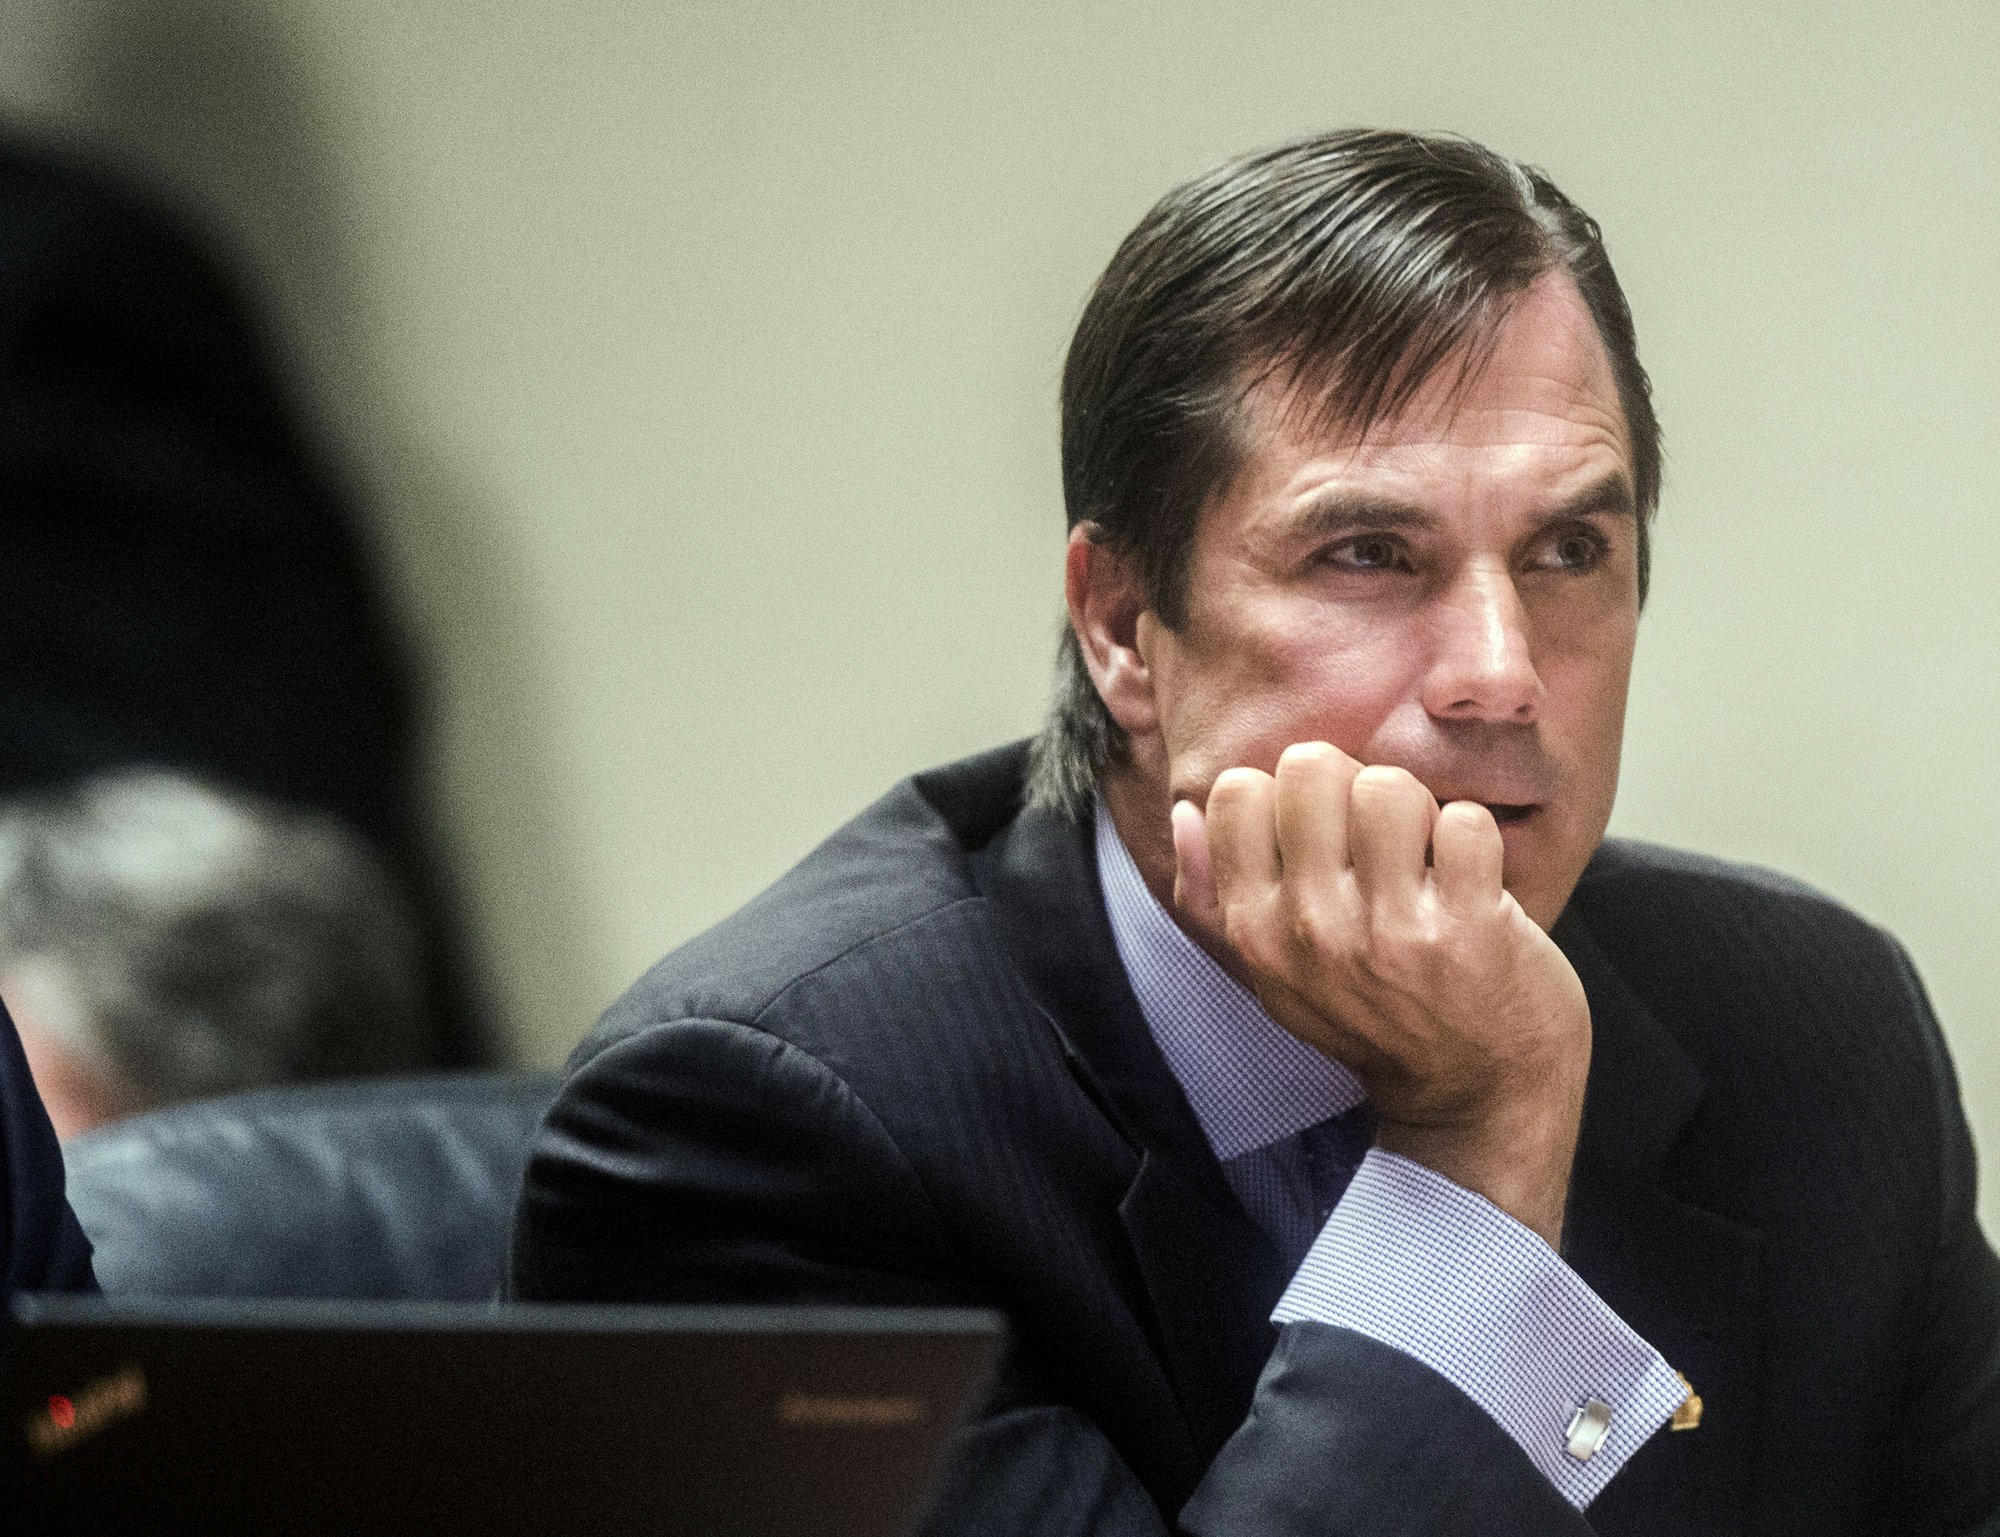 Judge rejects 6-month timeout in major Flint water case